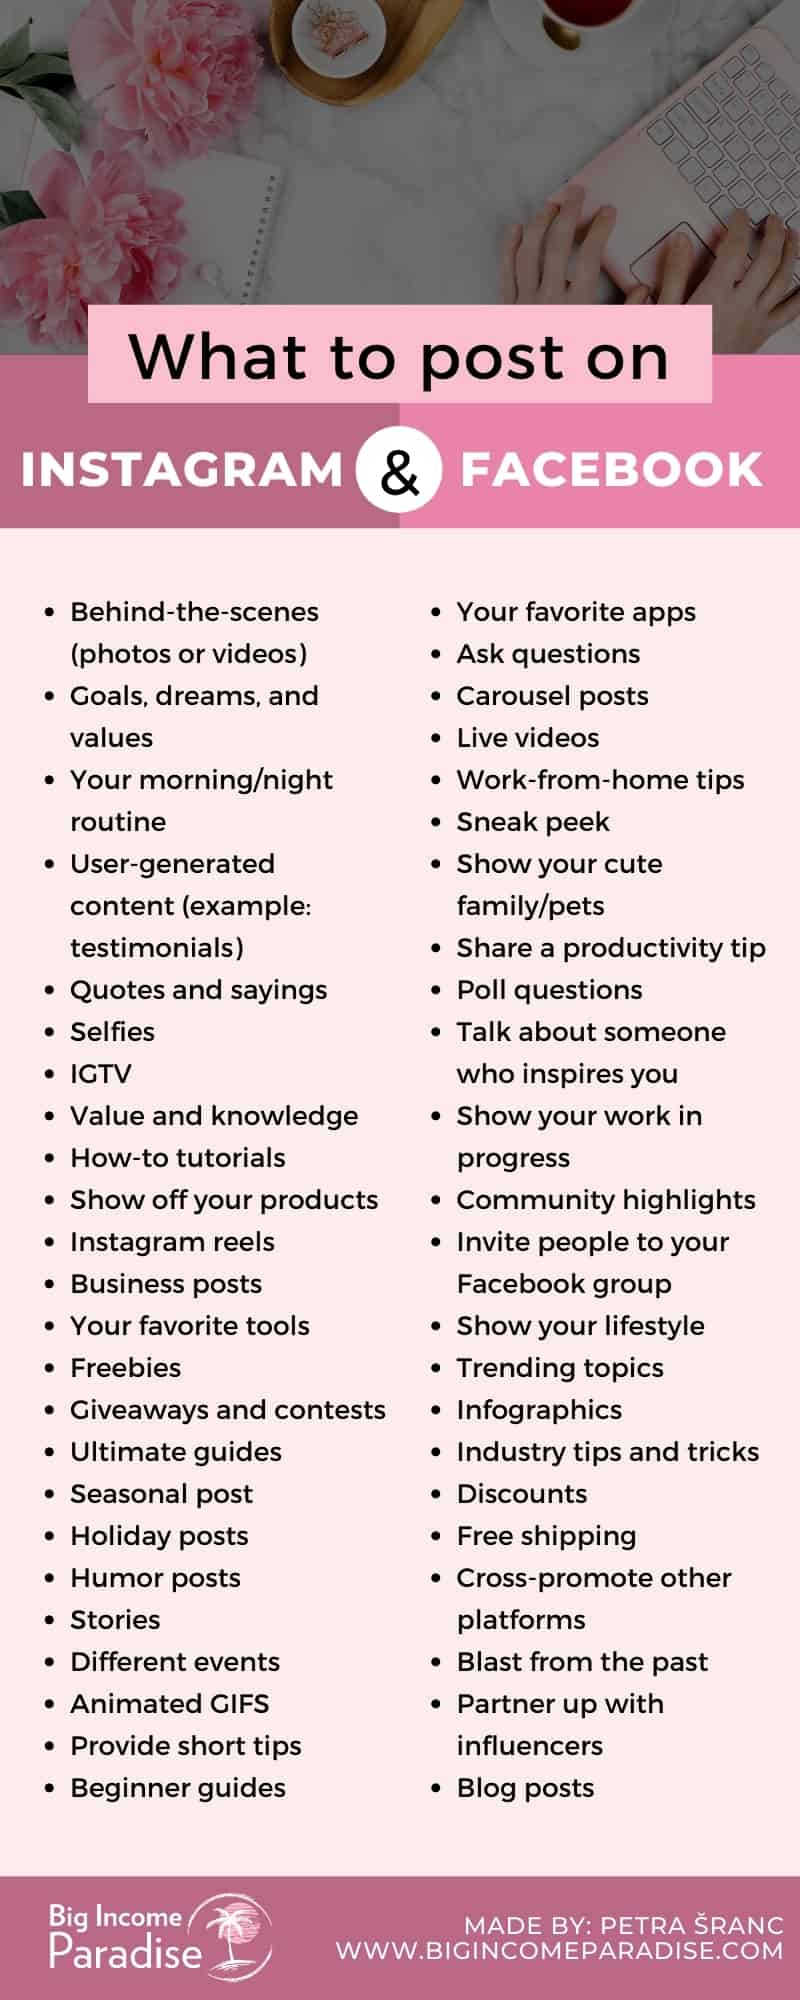 What to post on Instagram and Facebook